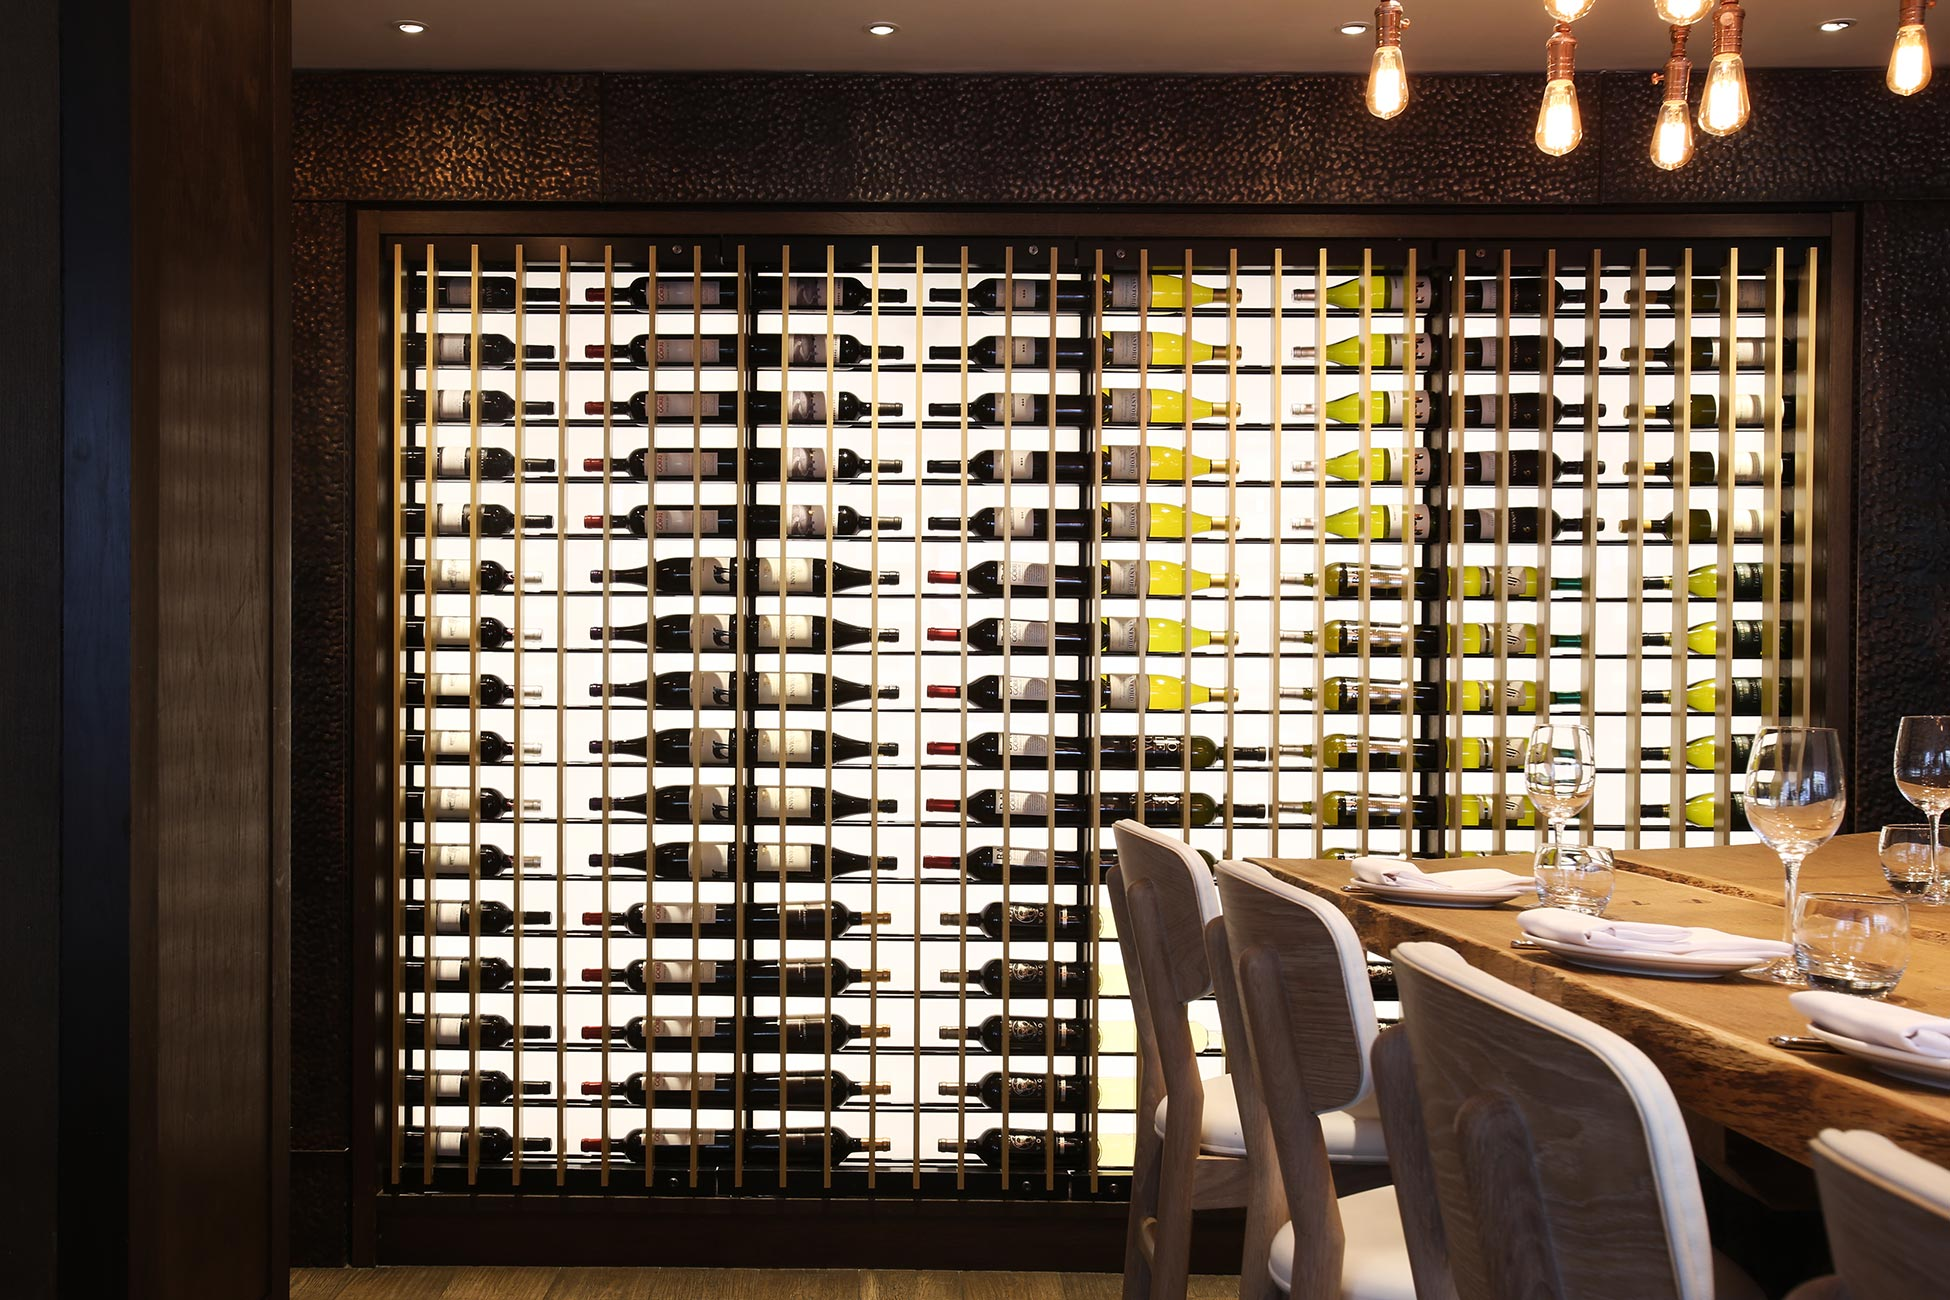 Hotel photography, wine rack detail